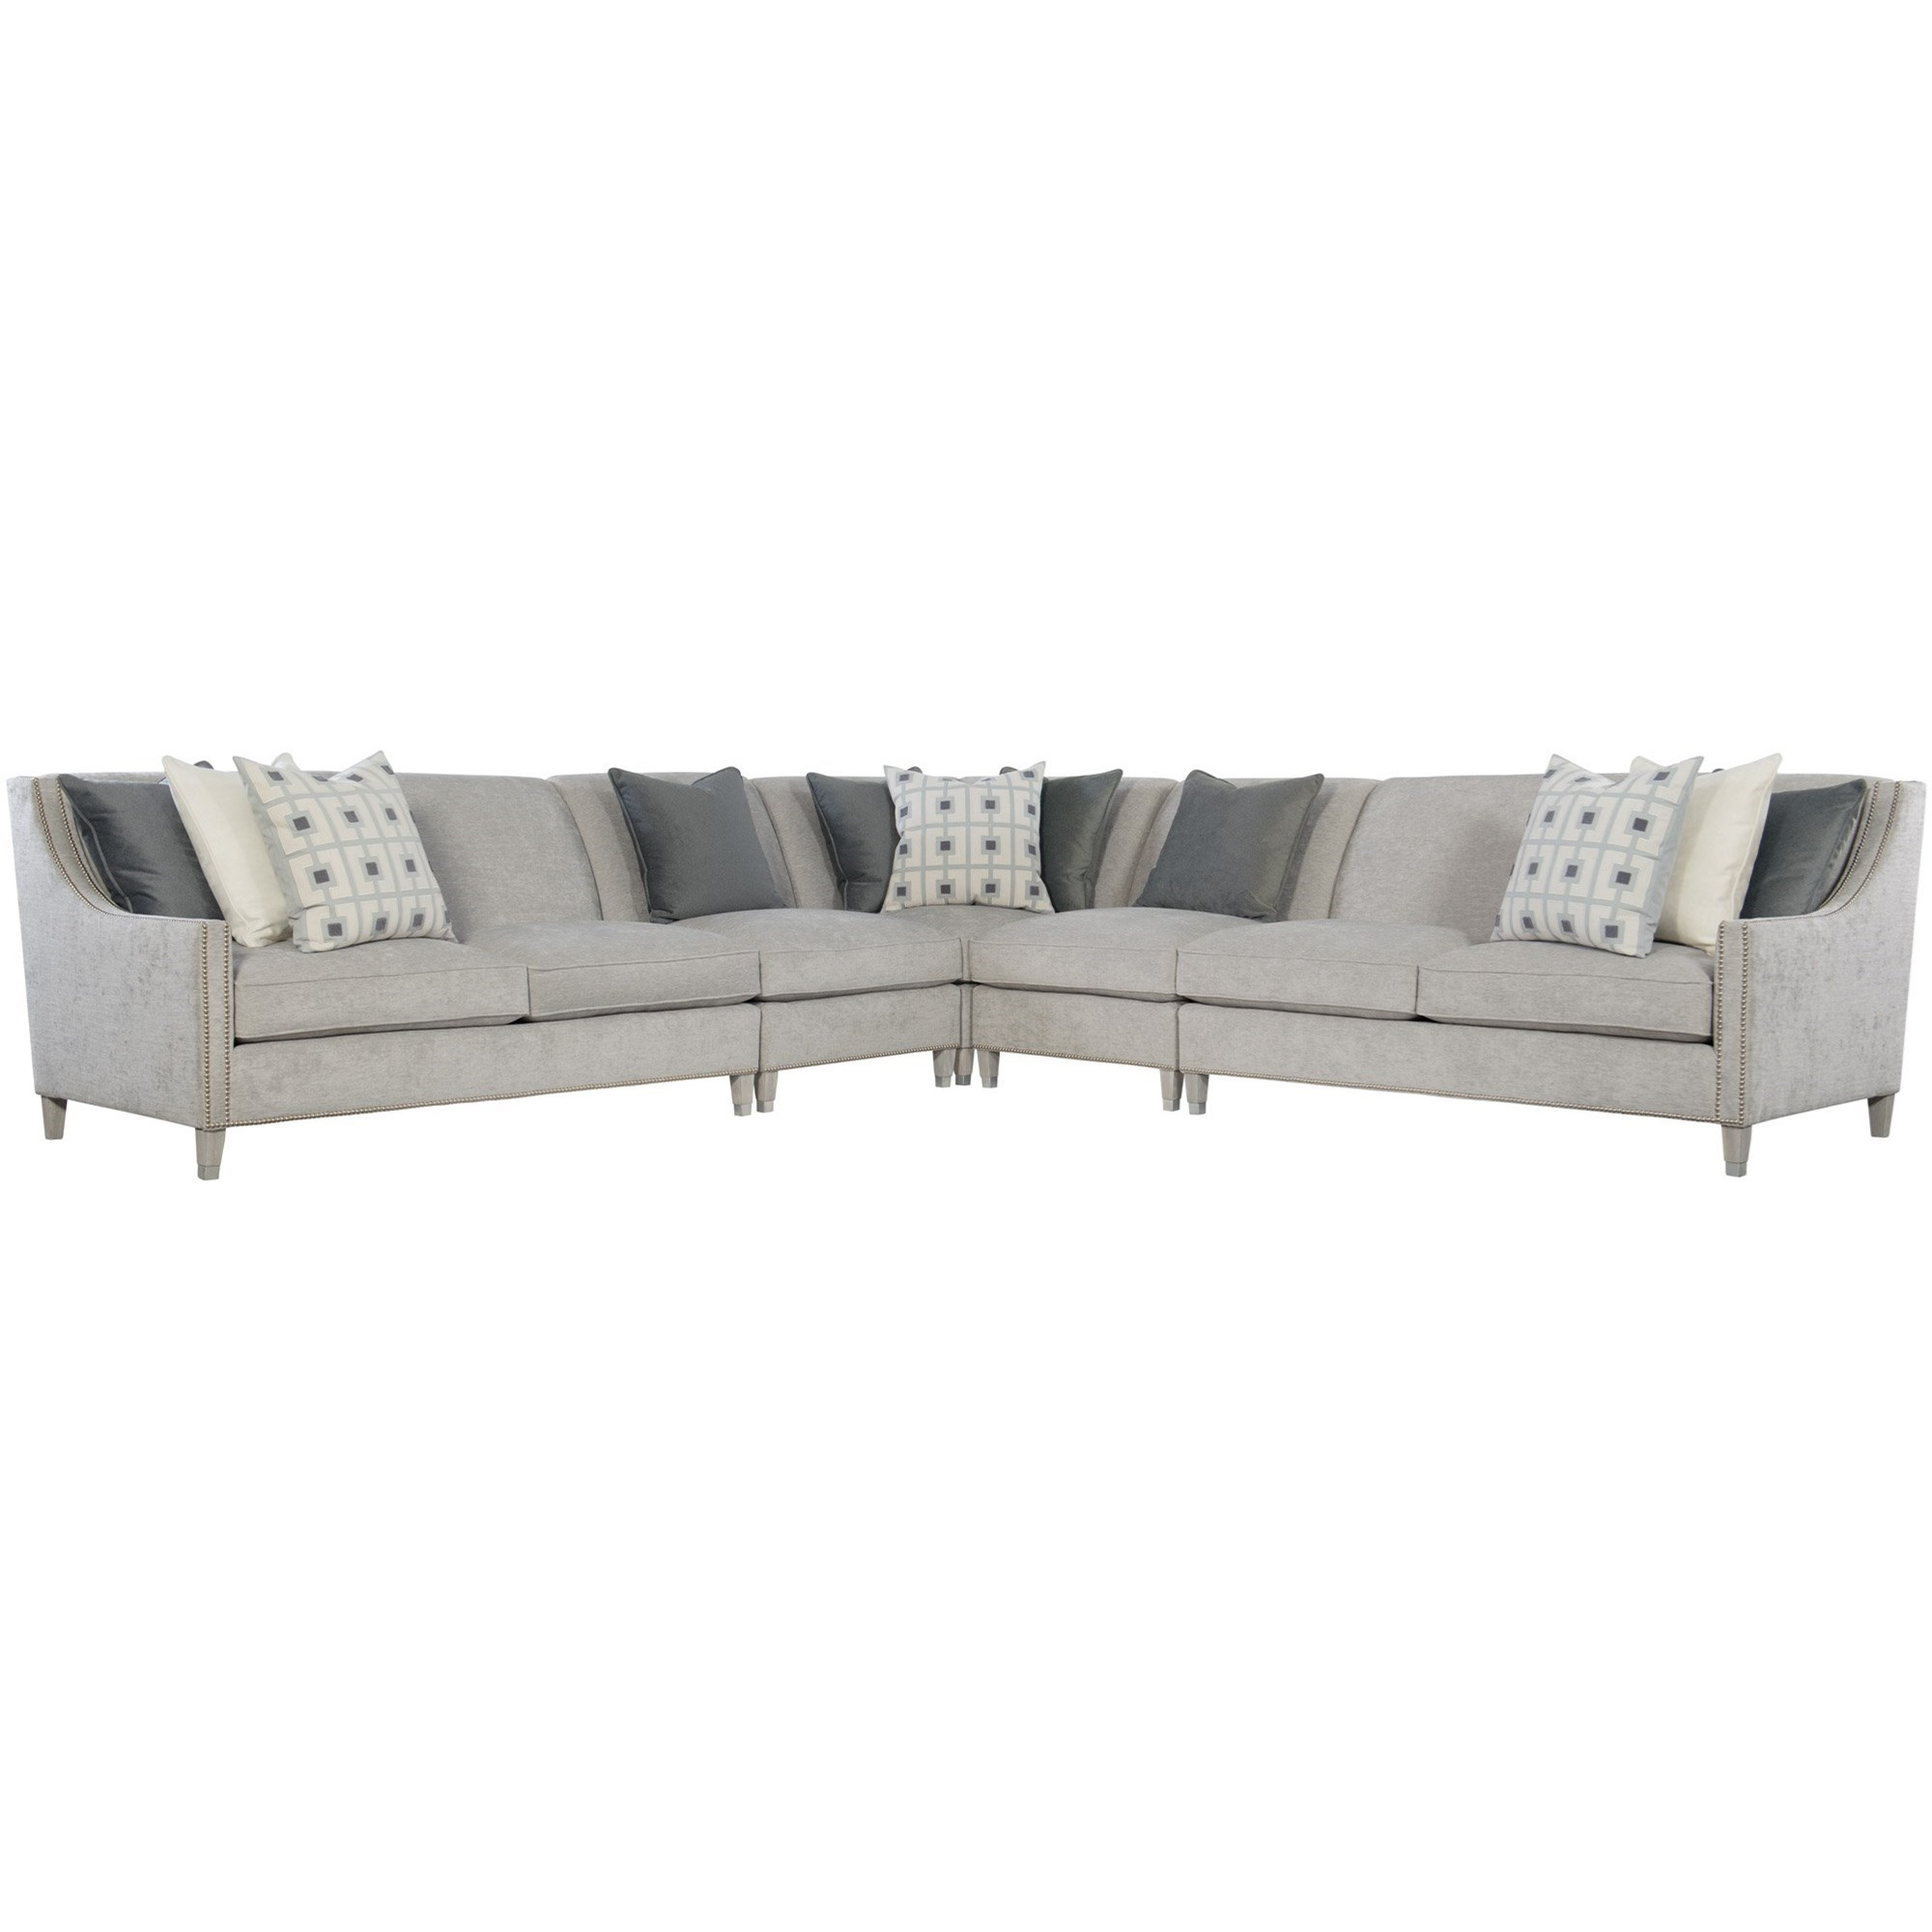 Picture of: Bernhardt Interiors Palisades Transitional 5 Piece Sectional With Nailhead Trim Belfort Furniture Sectional Sofas